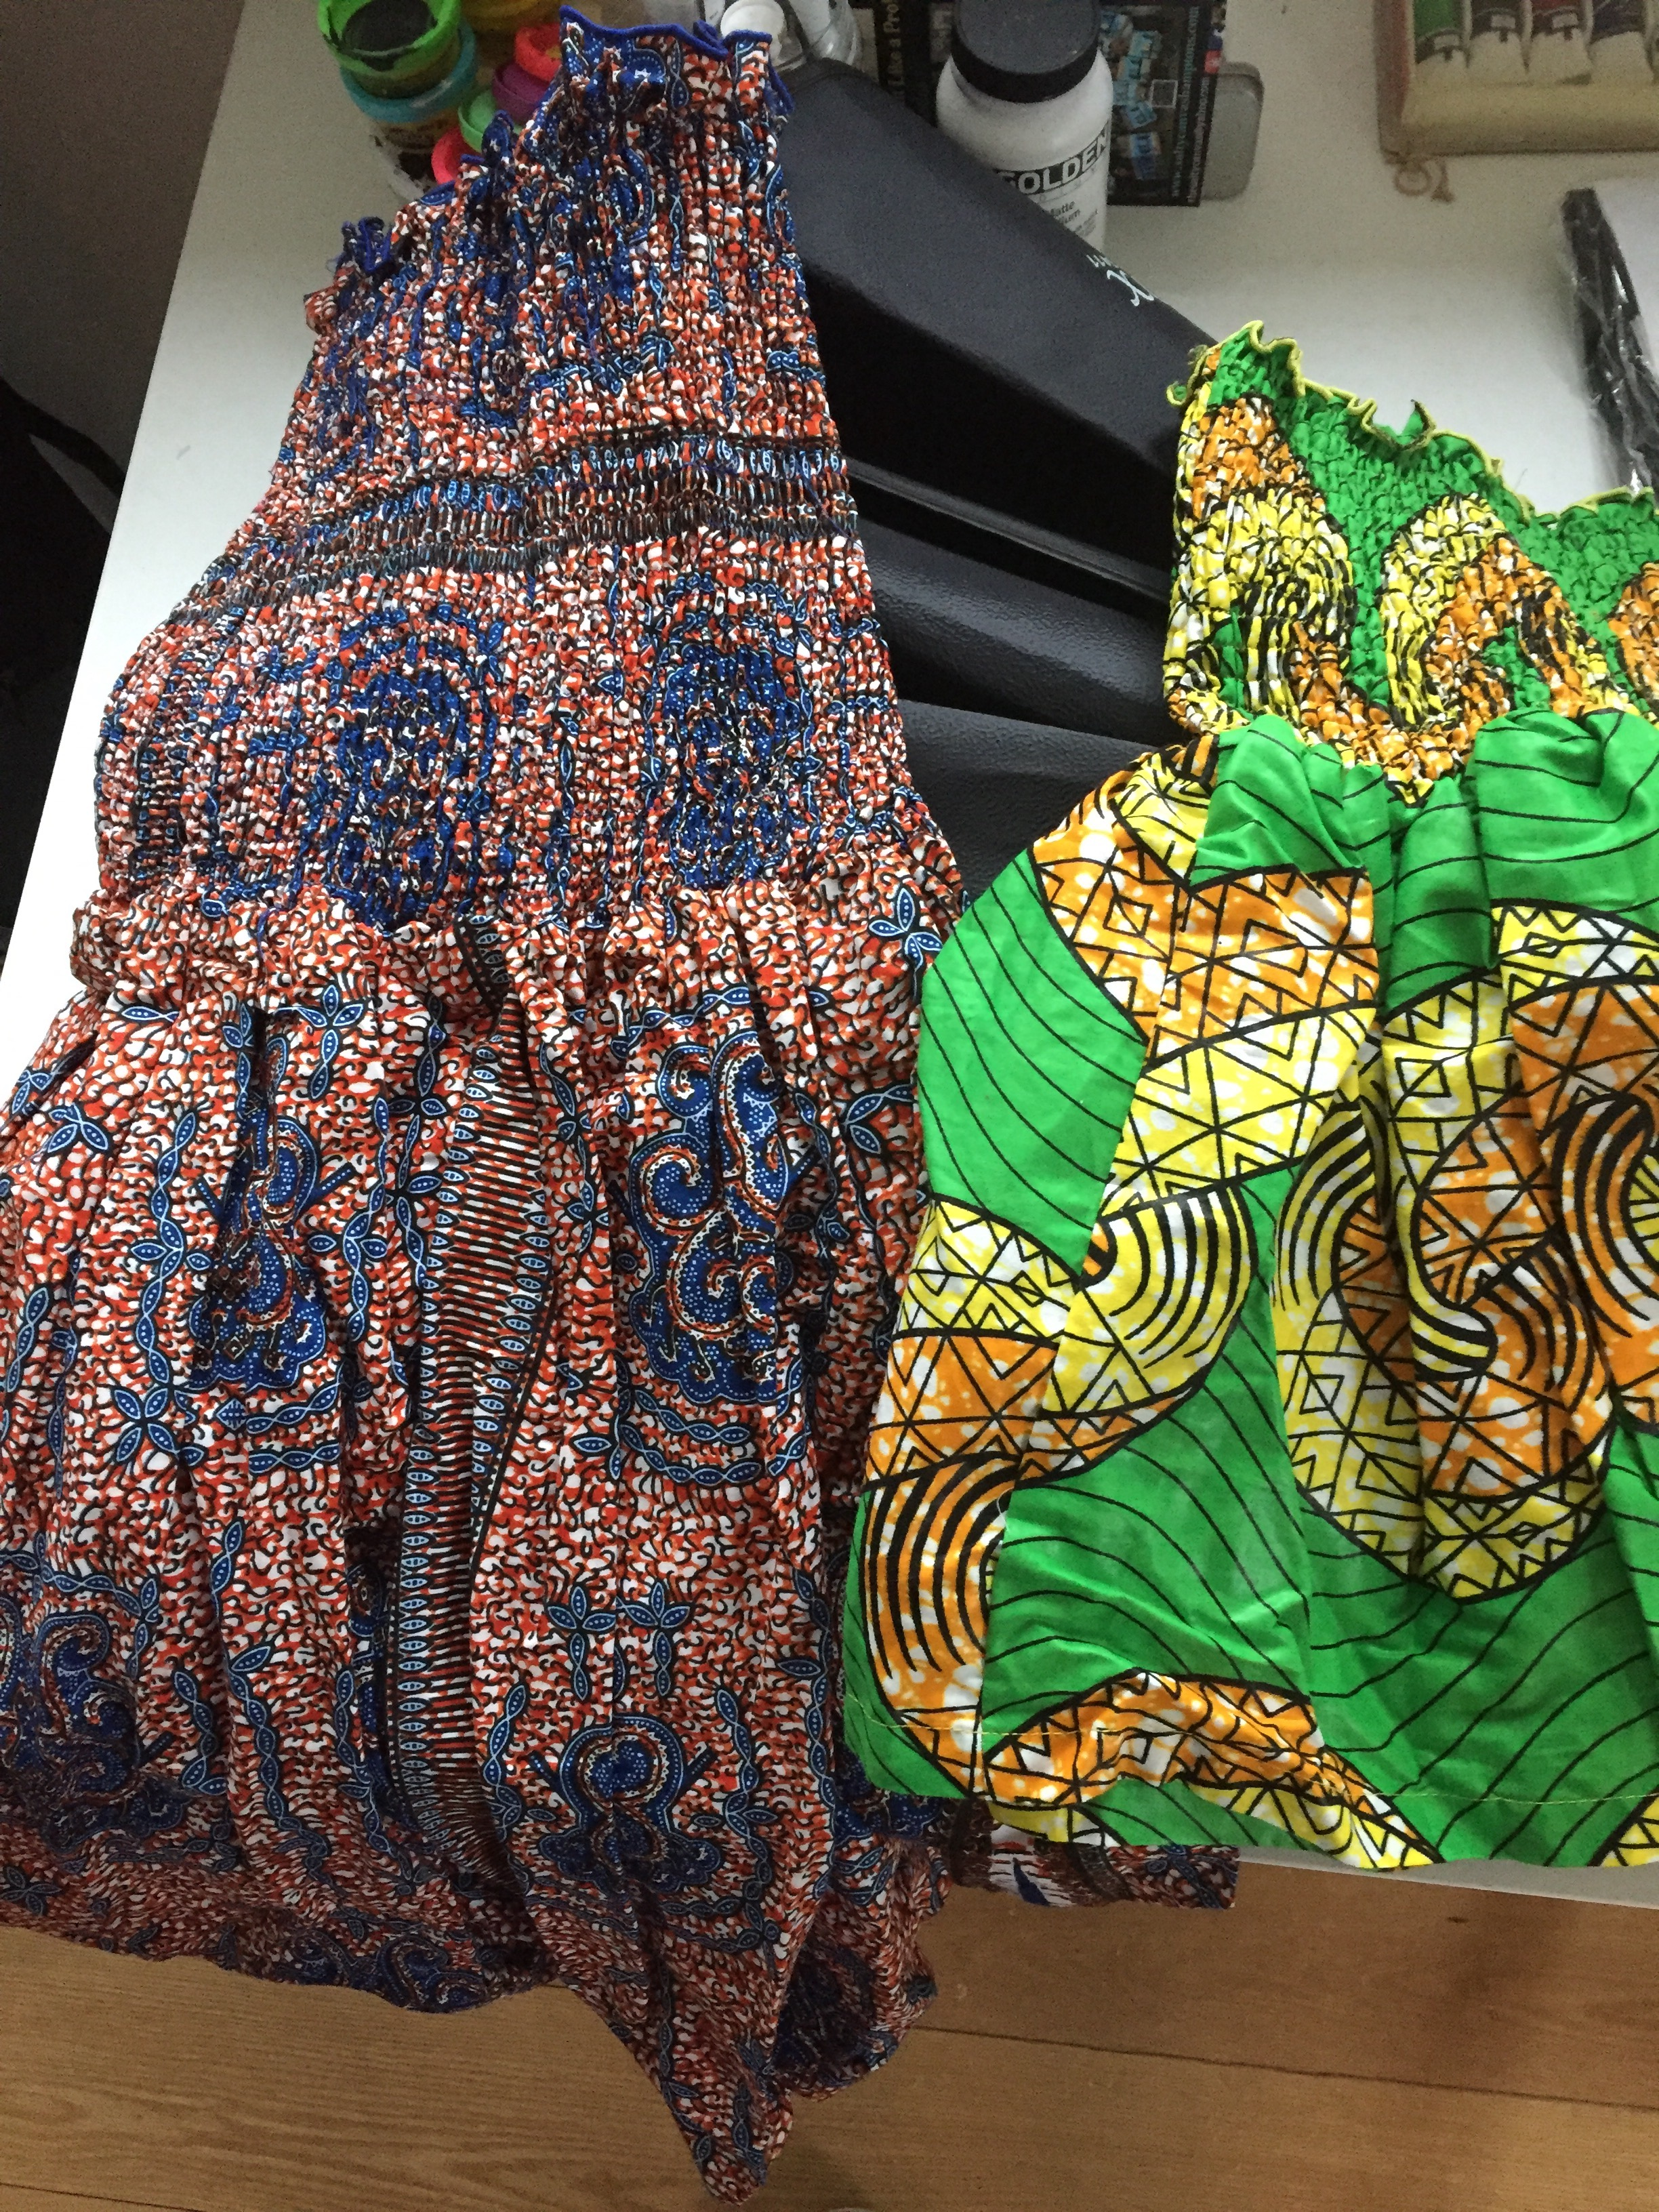 Ghanaian Sun Dresses : Rest of the text goes here.